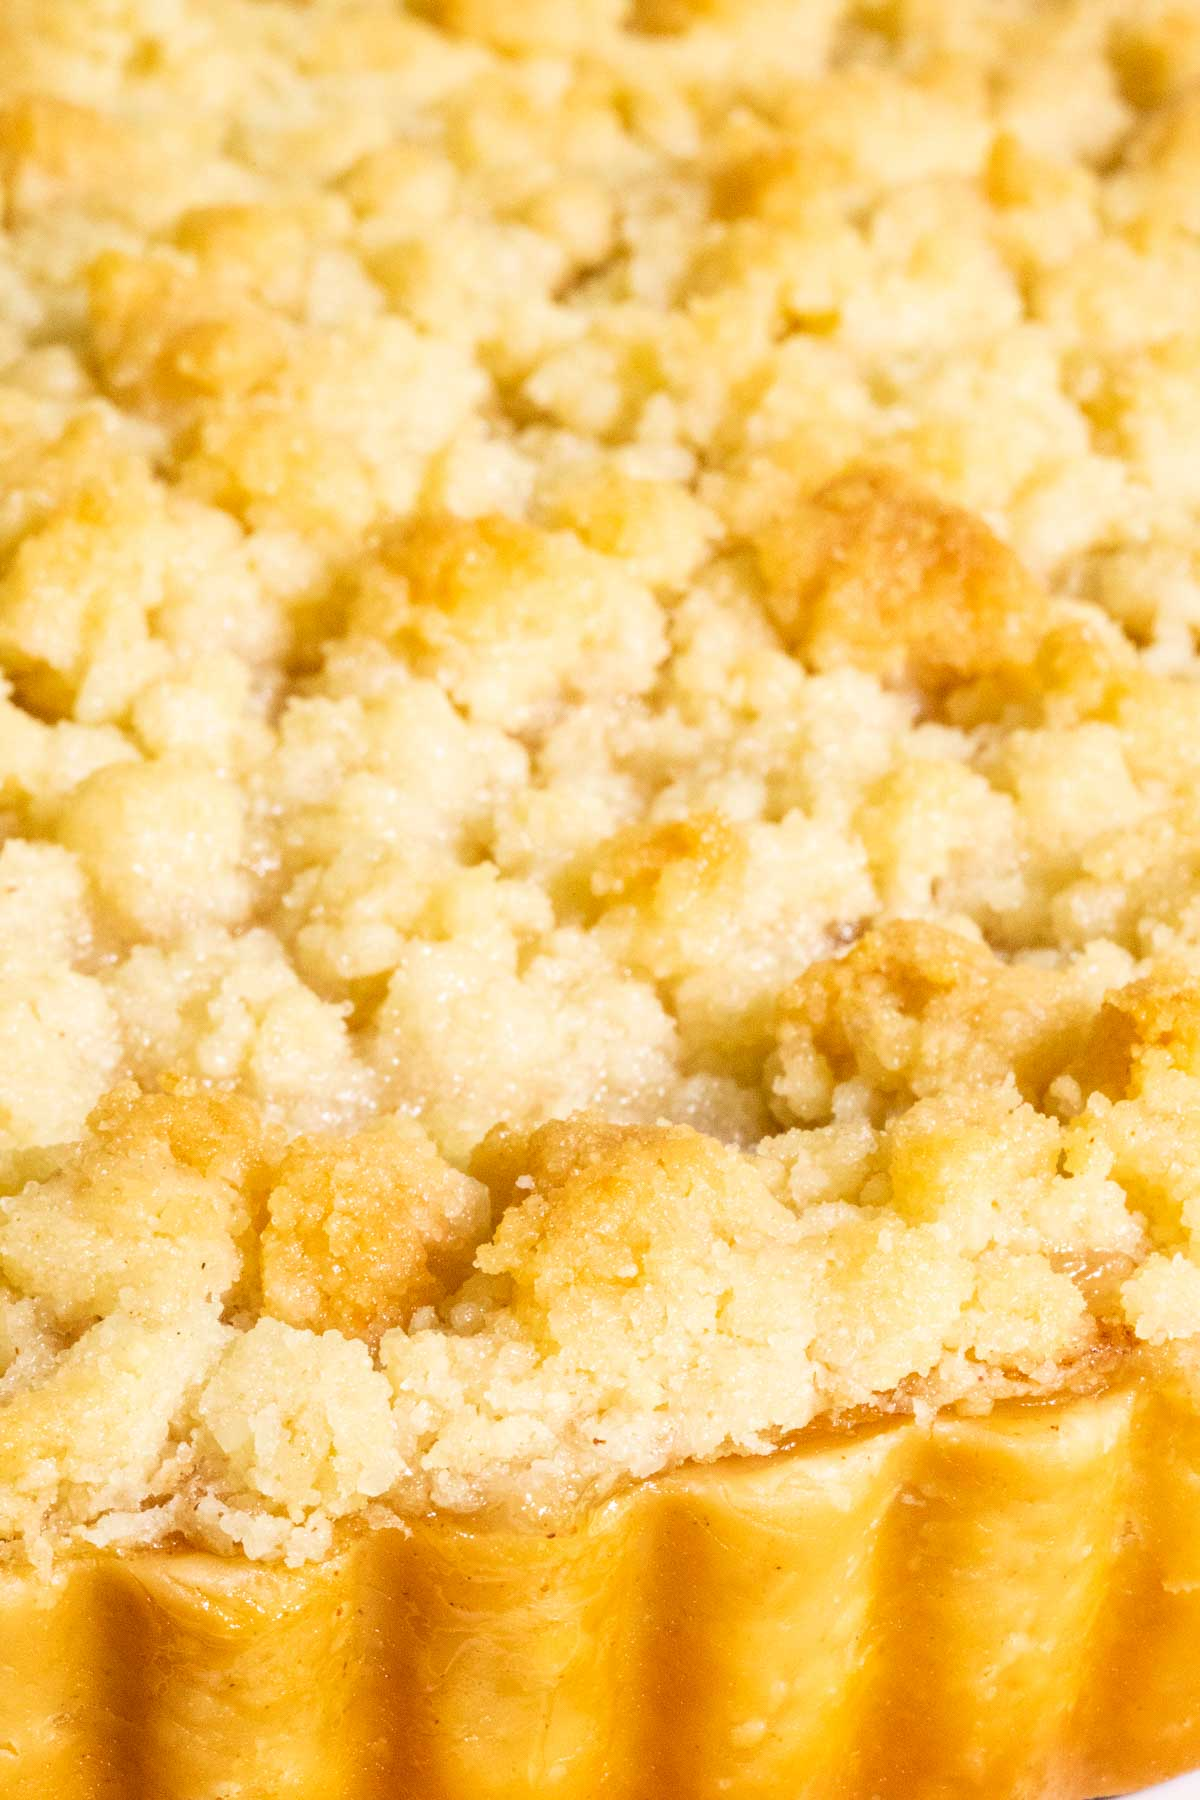 Vertical extreme closeup of the top crumble crust of an Easy French Apple Tart.